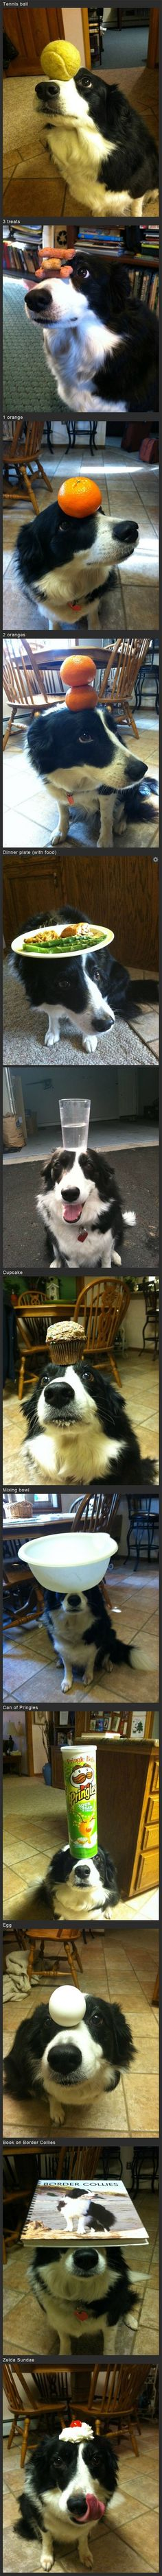 Border Collie's are too smart for most people. Unless you're going to give your dog plenty of work: do the breed a favorite and don't buy a border collie.